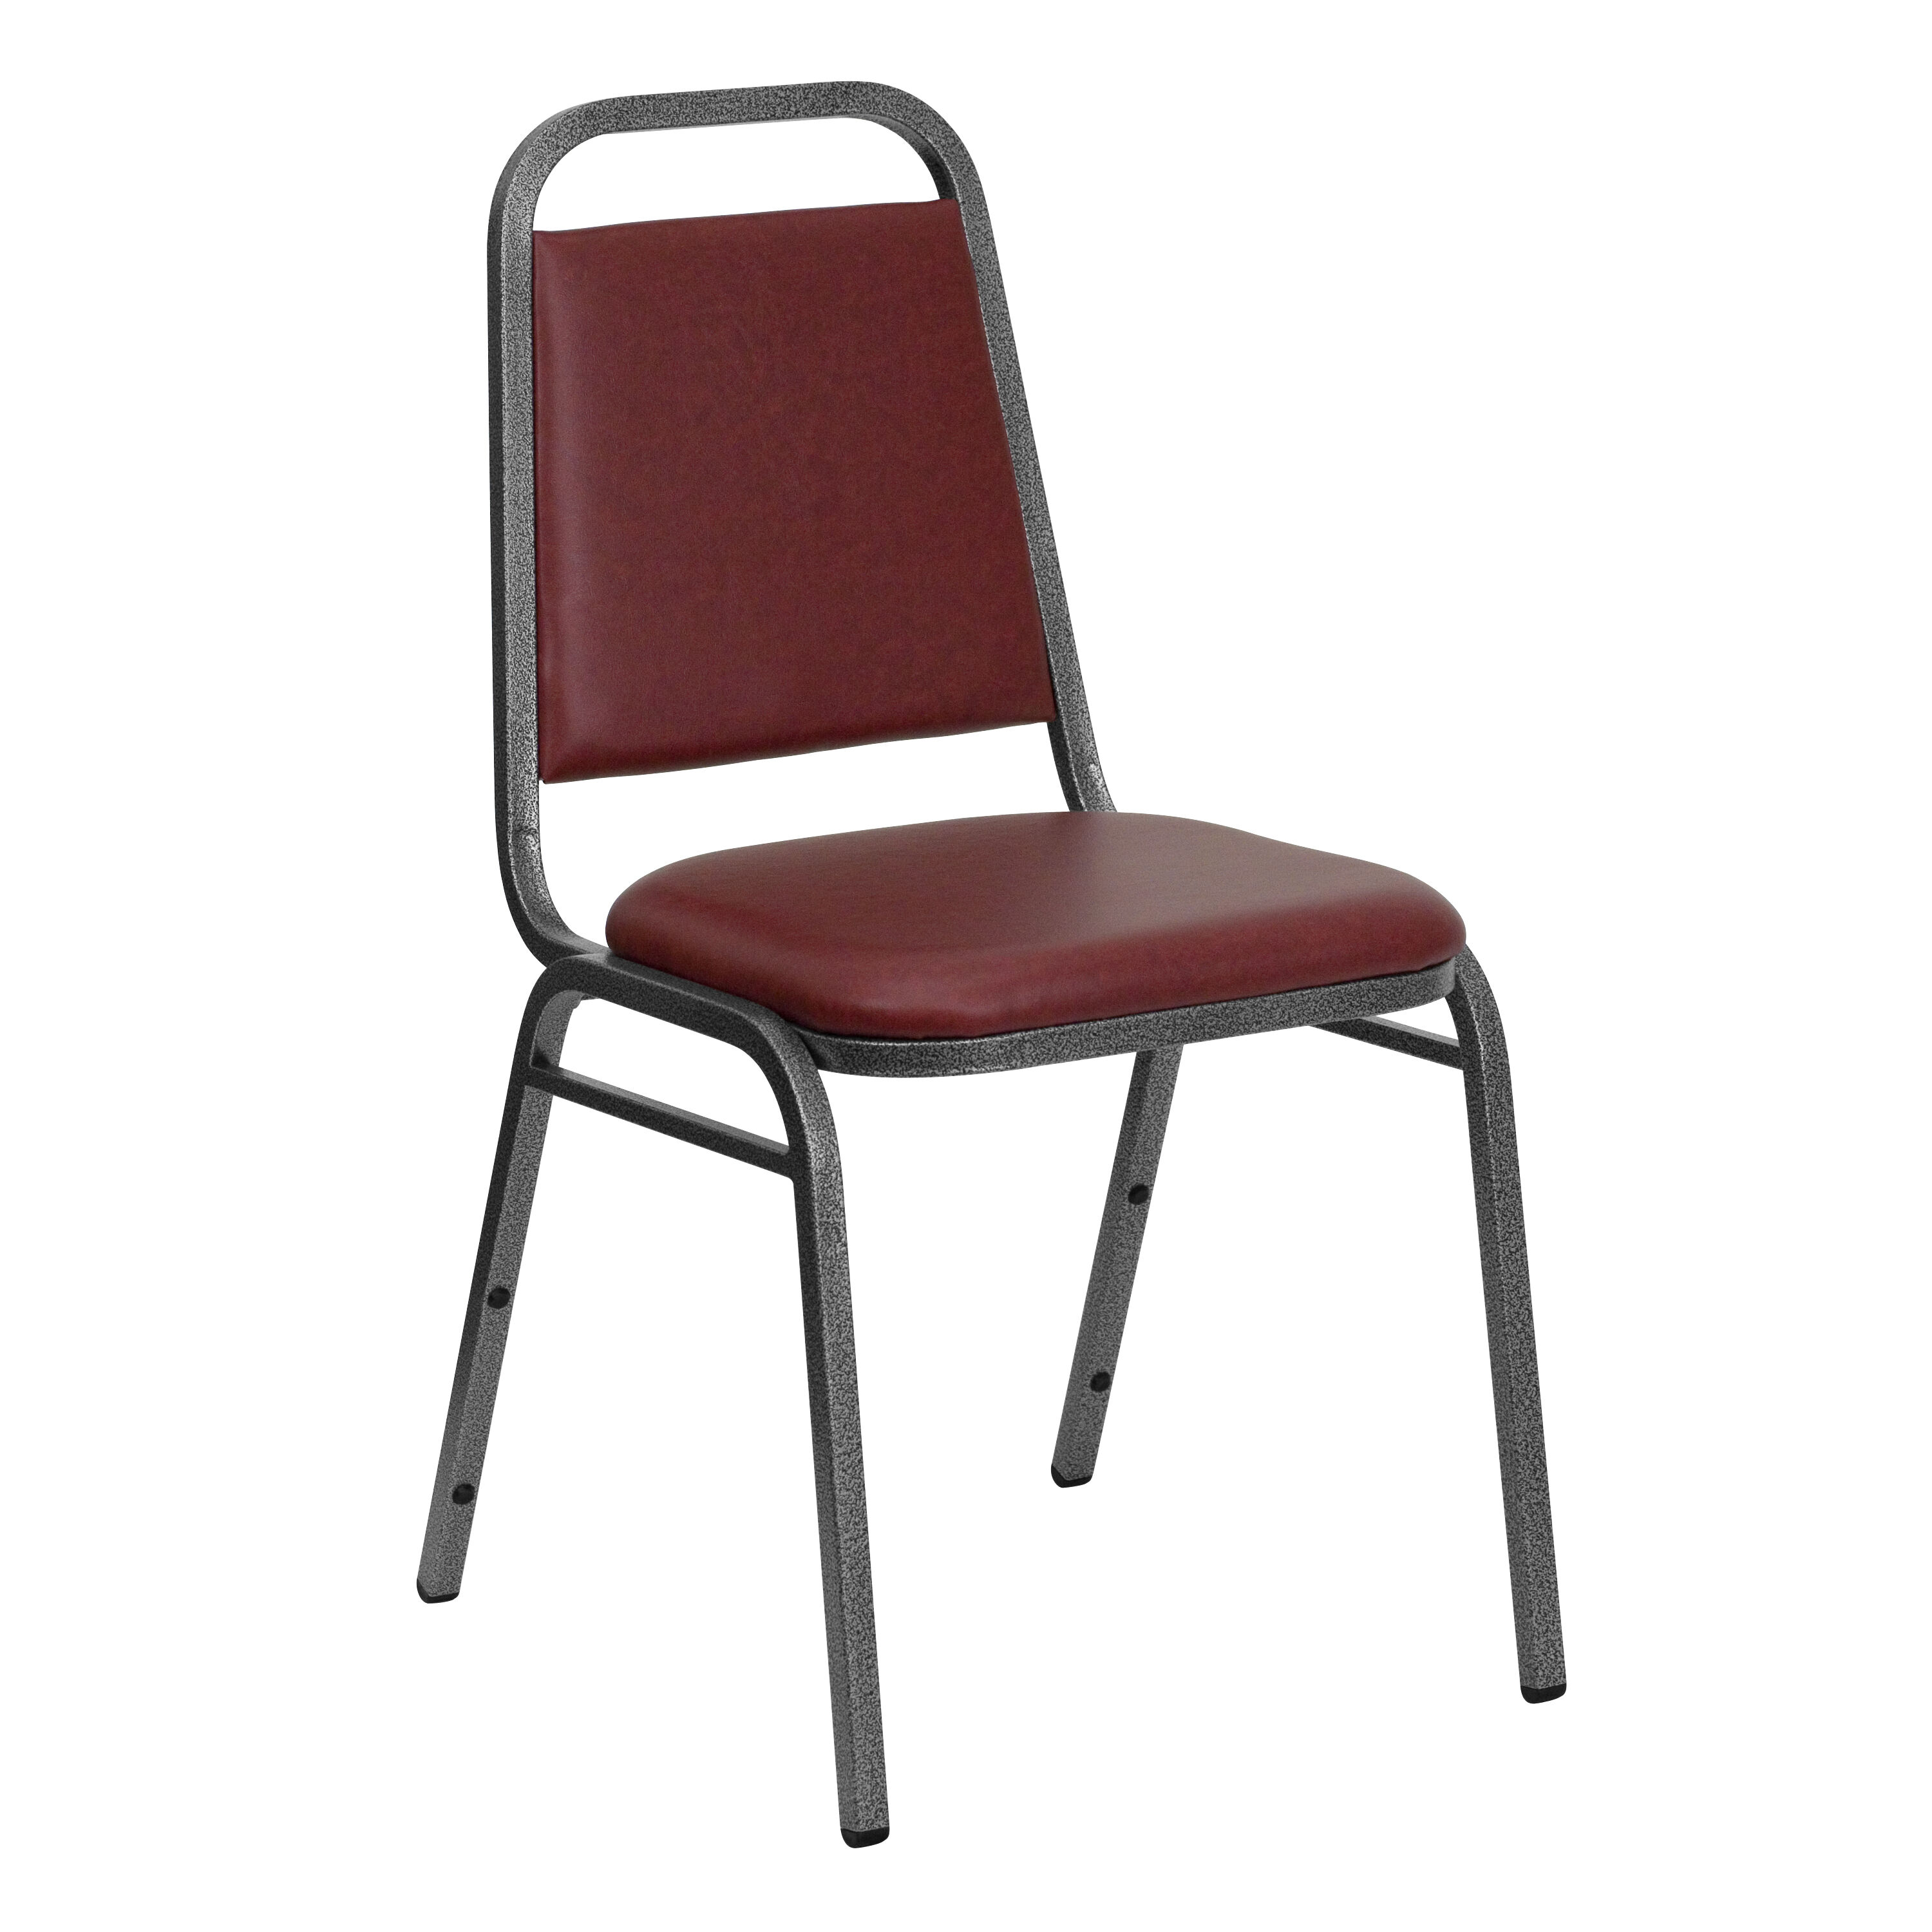 HERCULES Series Trapezoidal Back Stacking Banquet Chair in Burgundy Vinyl - Silver Vein Frame  sc 1 st  Restaurant Furniture 4 Less & RestaurantFurniture4Less: Restaurant Banquet Chairs